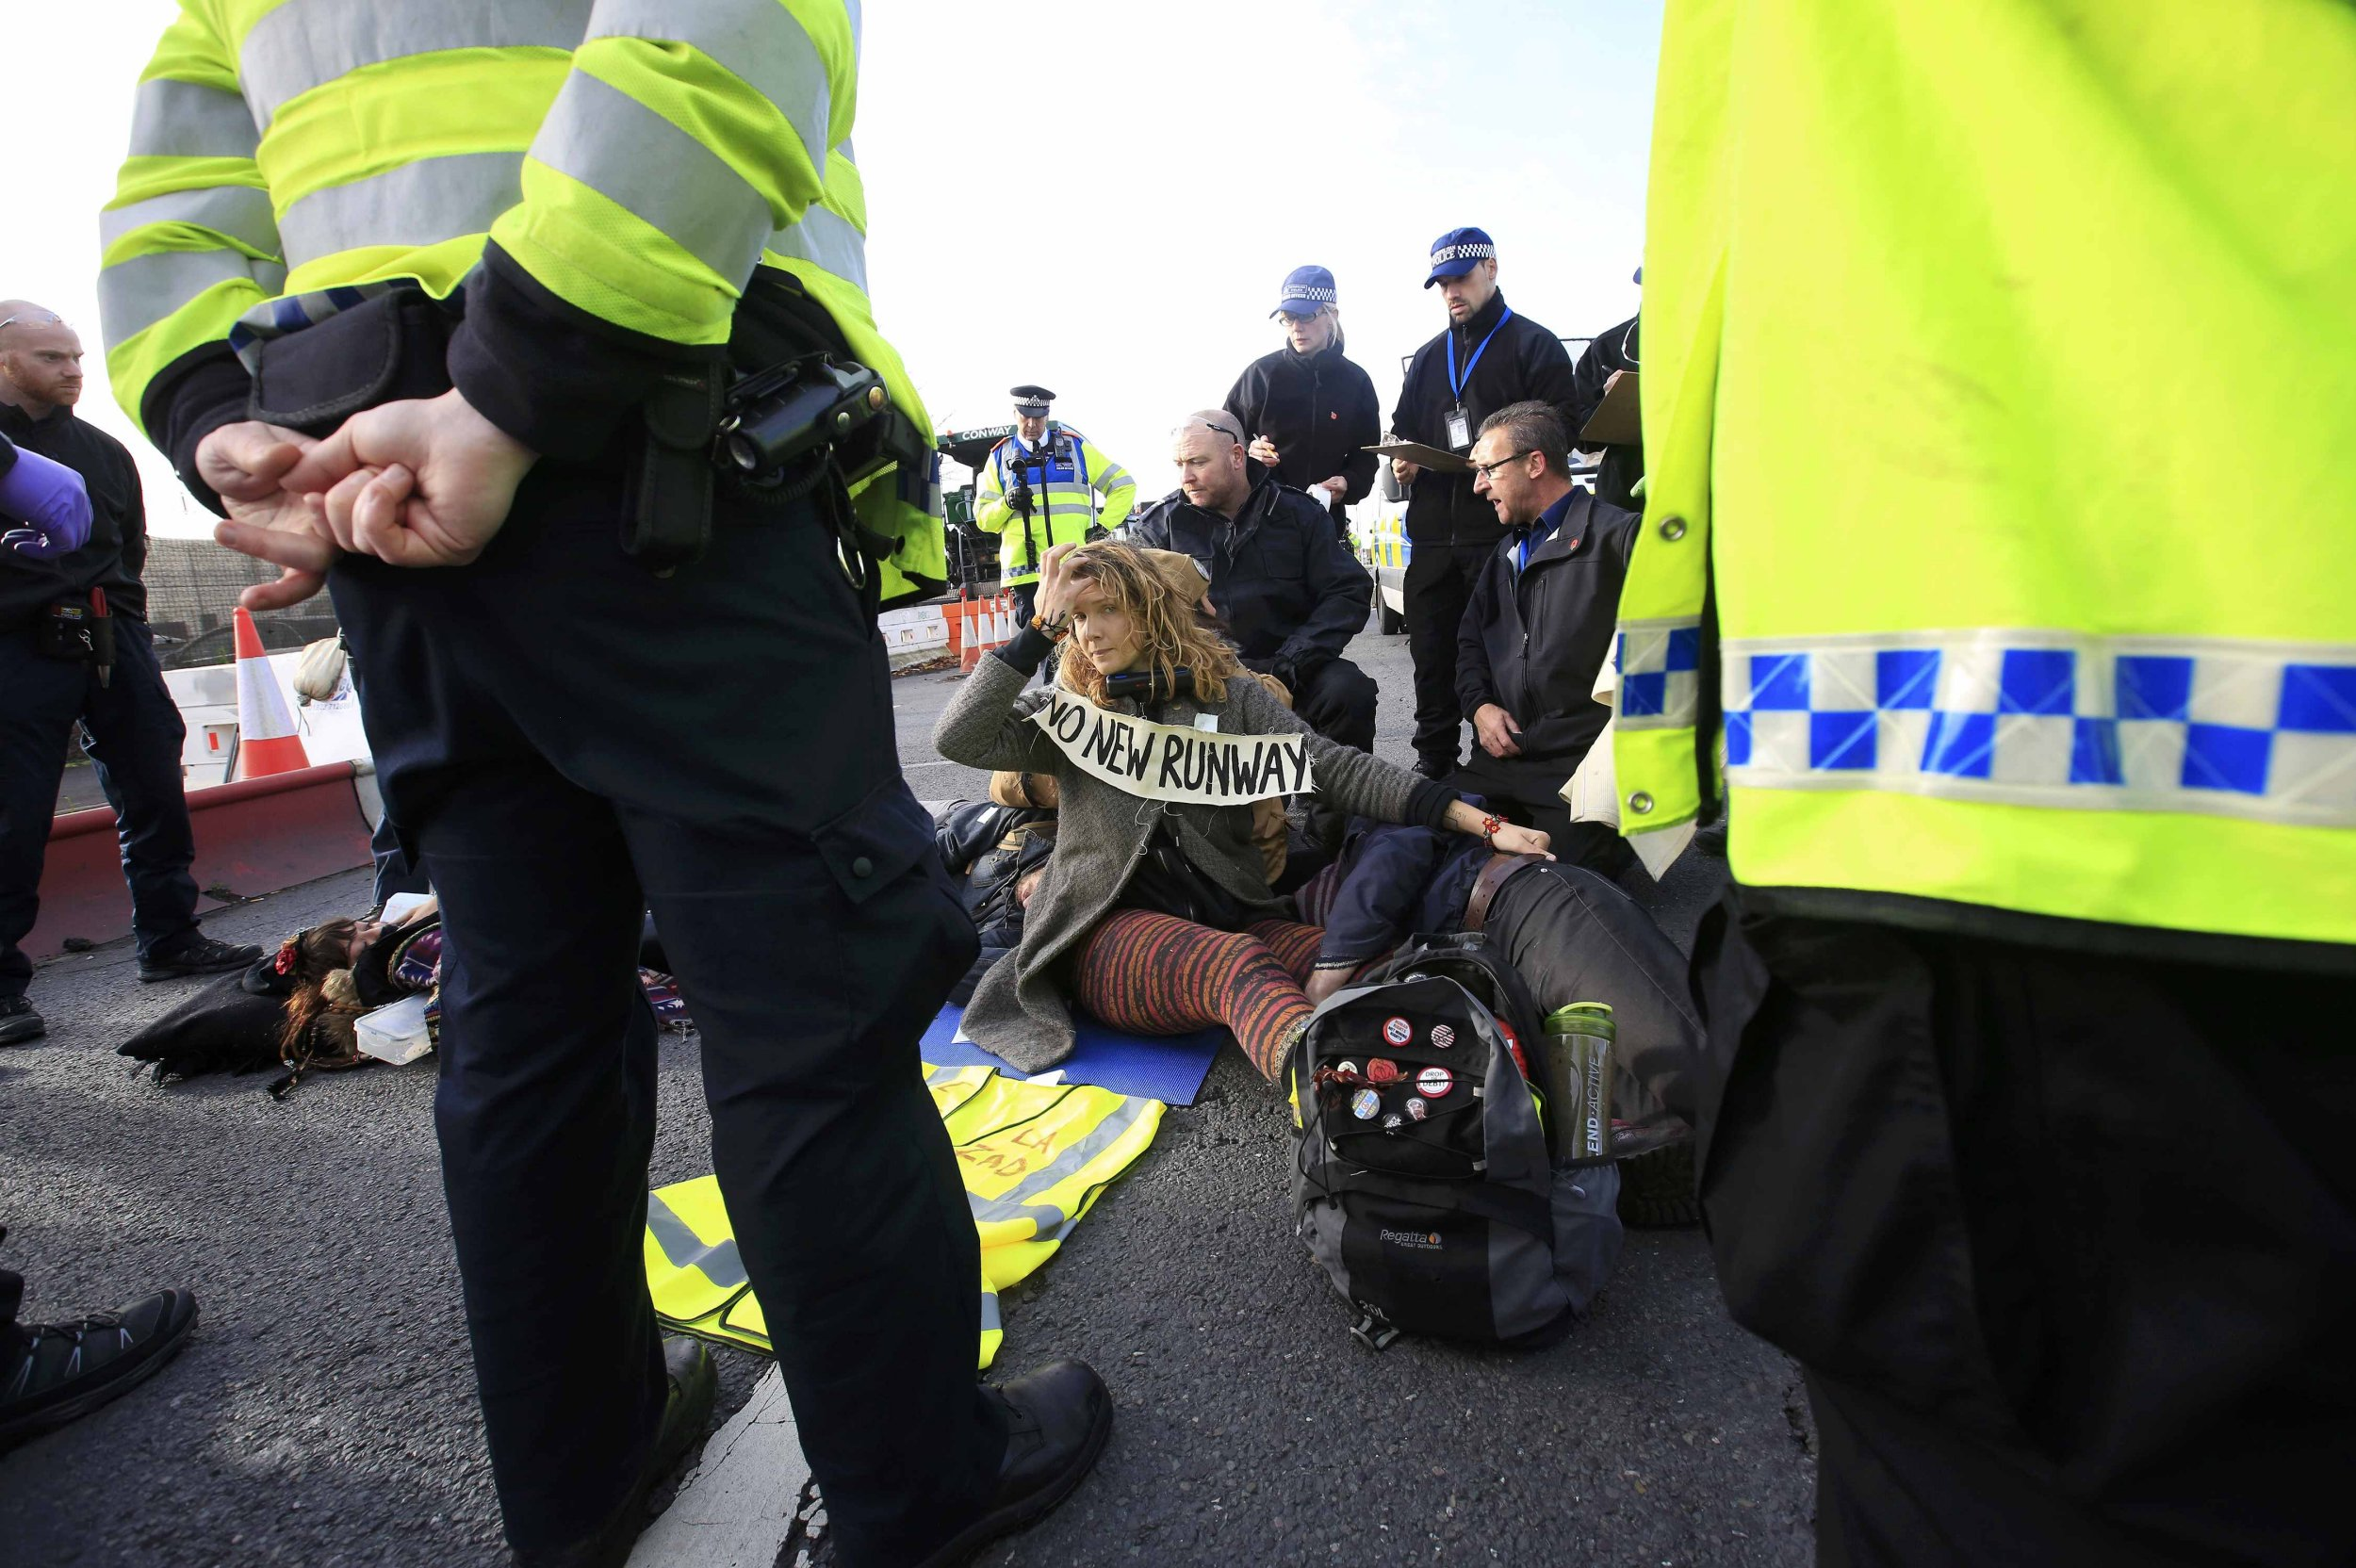 Environmental protesters block a road during a protest near Heathrow airport in west London, Britain November 19, 2016. REUTERS/Paul Hackett